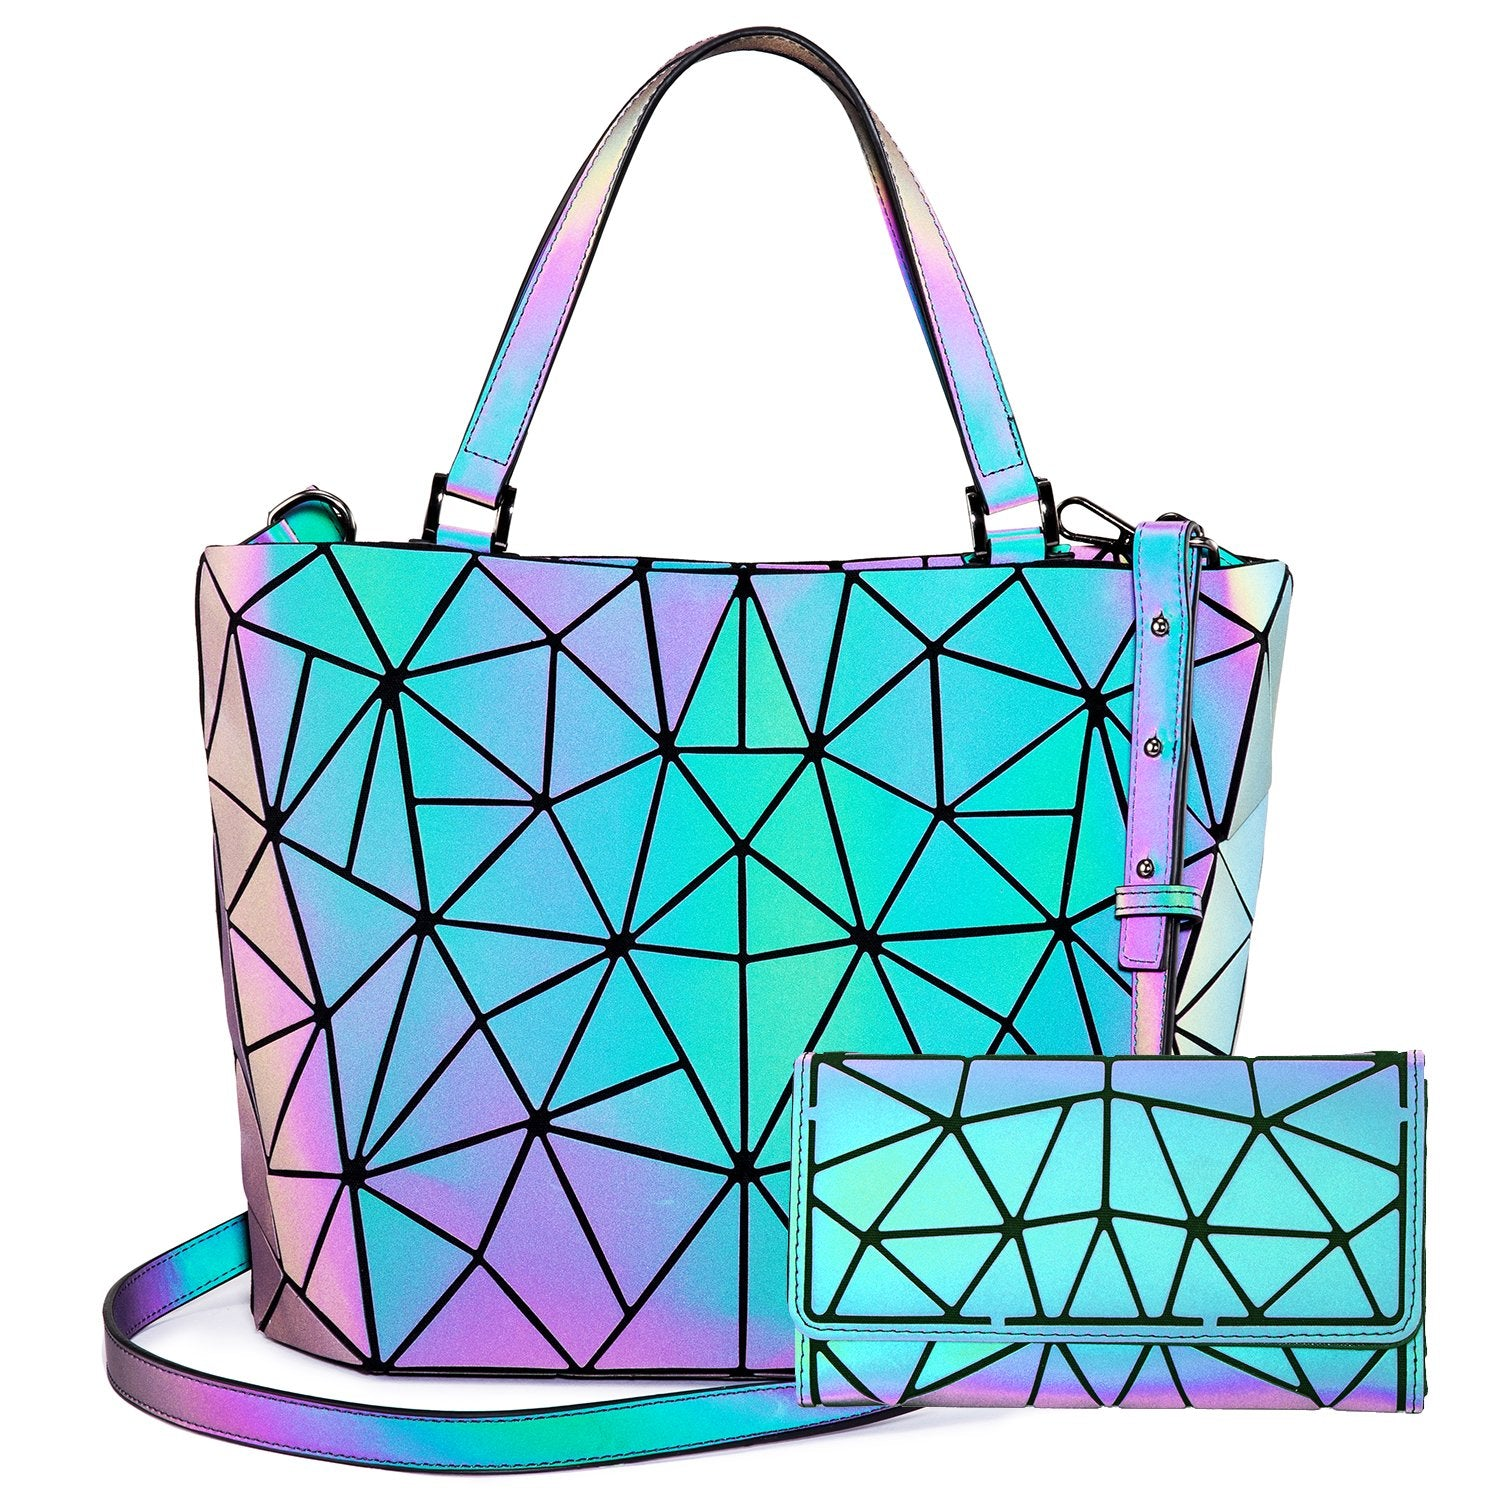 LOVEVOOK Geometric Luminous Holographic Reflective Bags Set